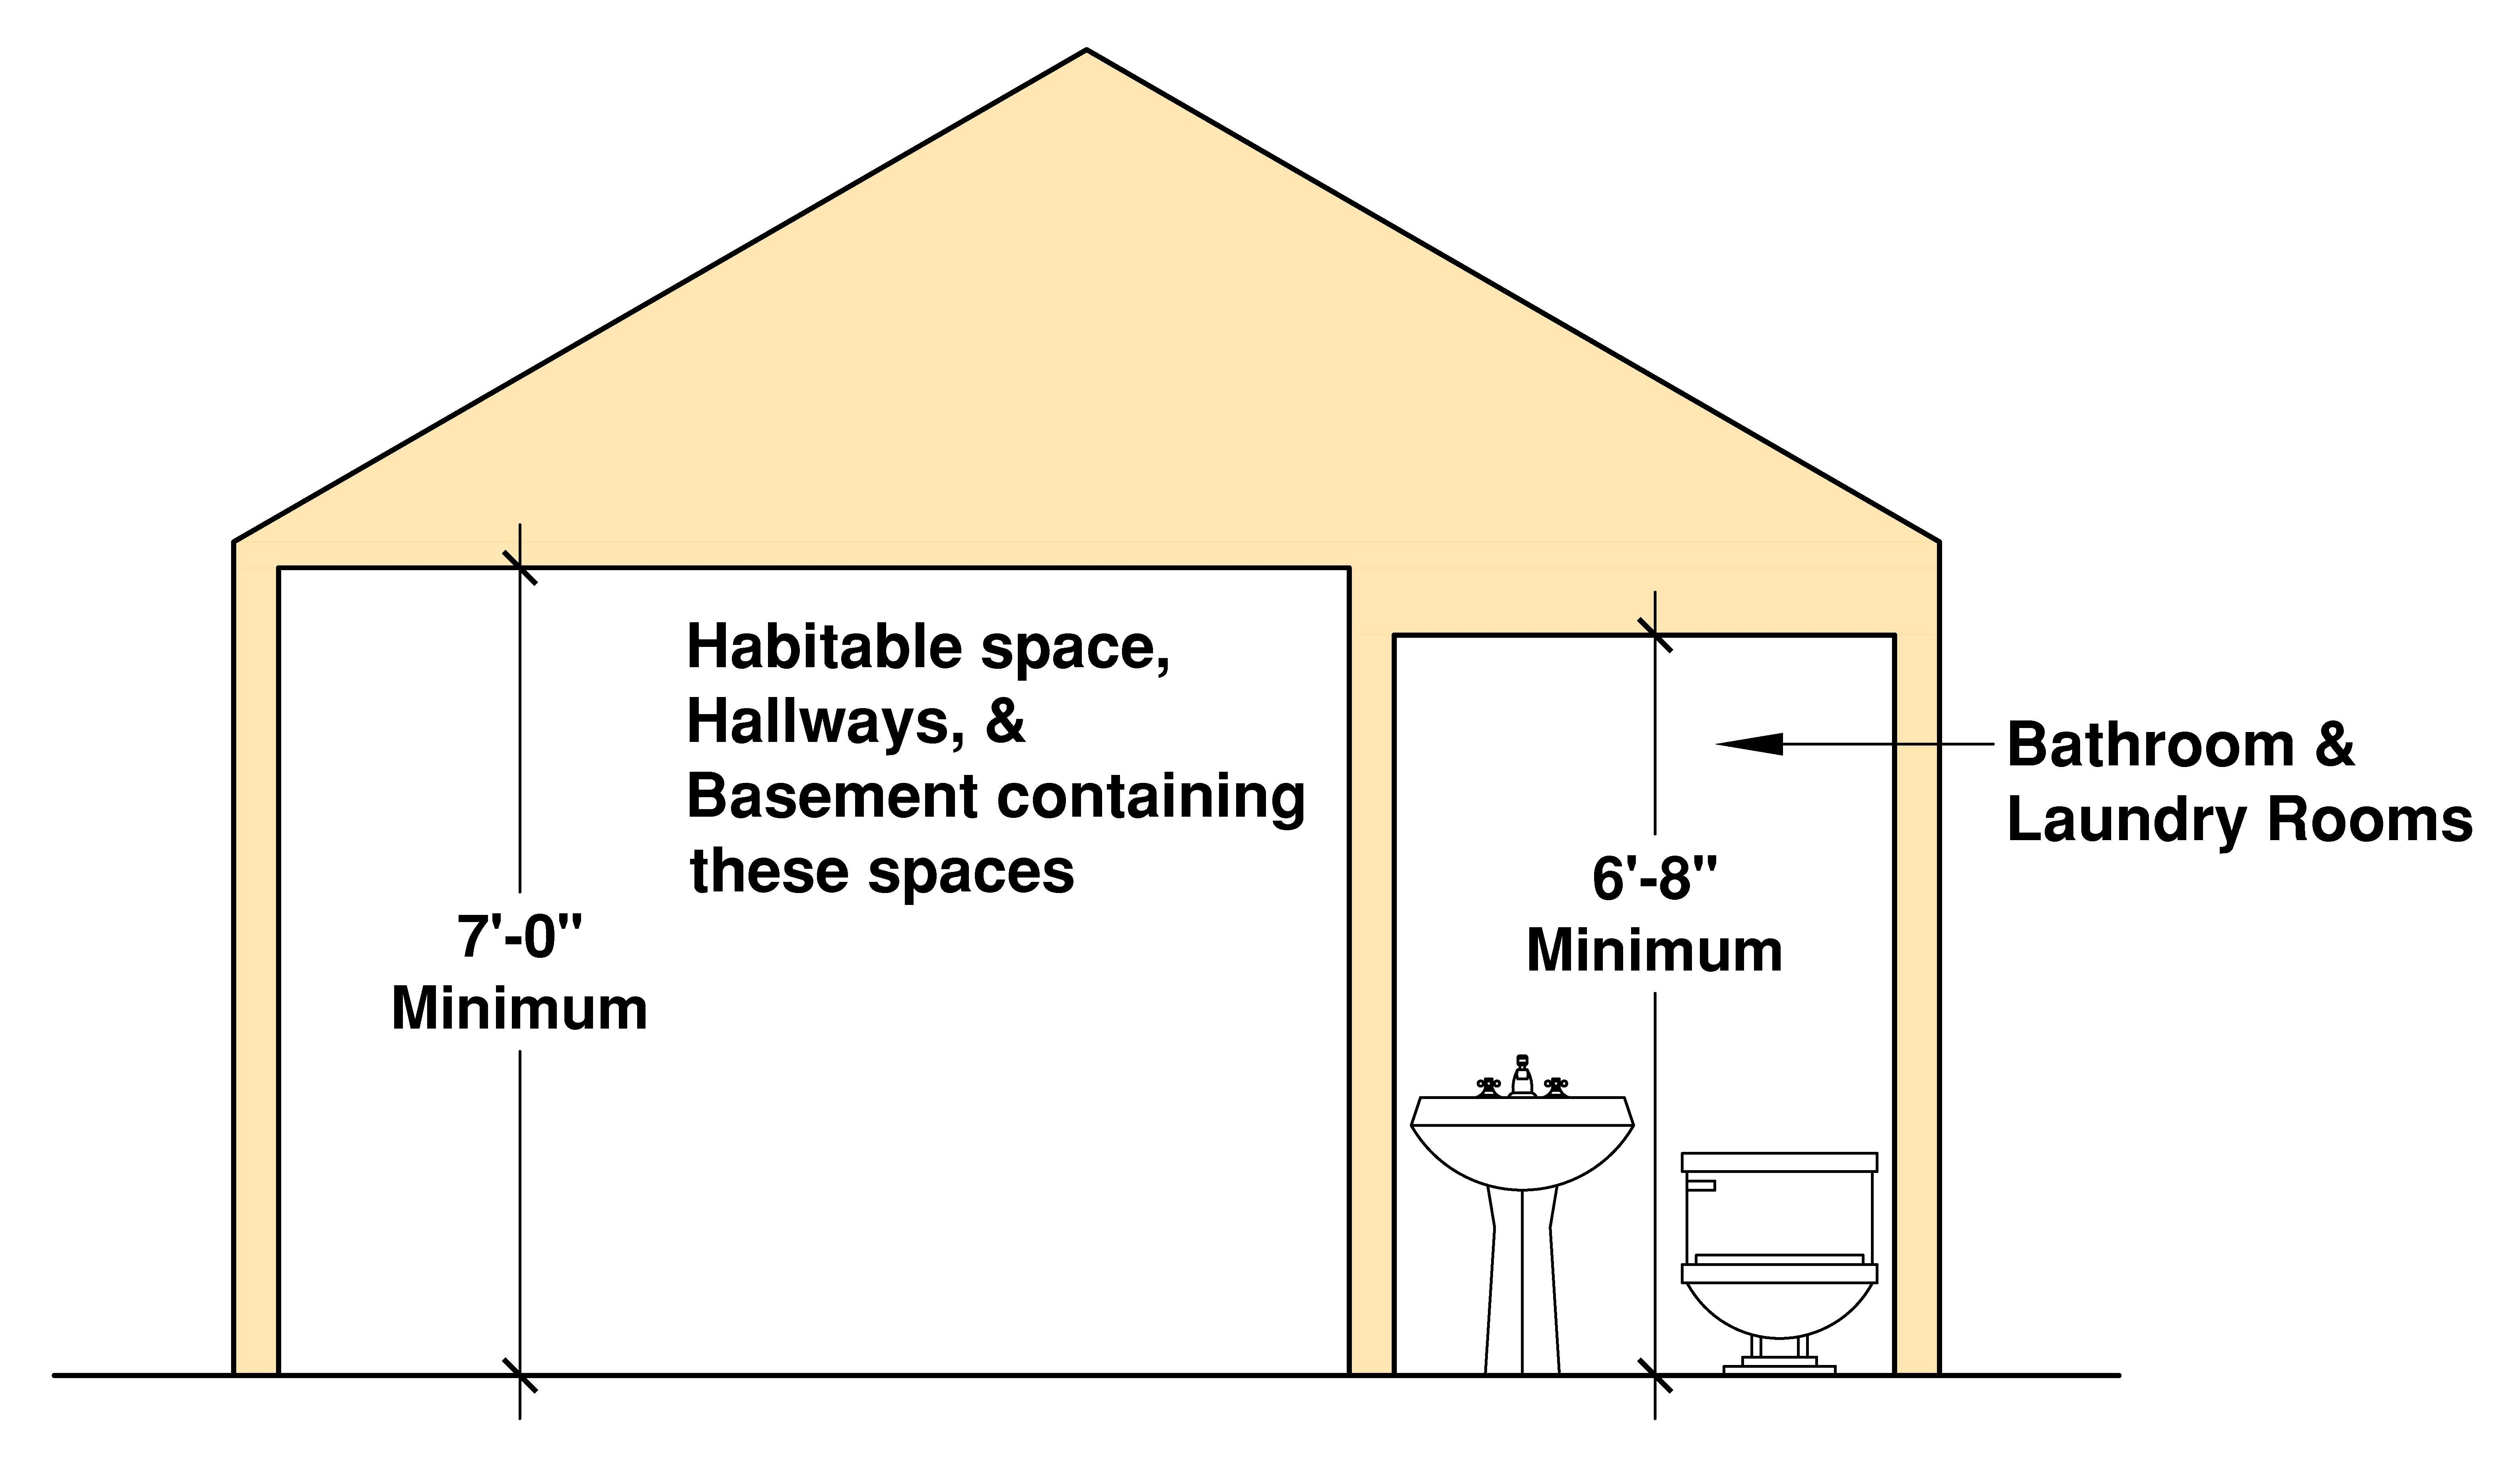 When it comes to determining the minimum ceiling height